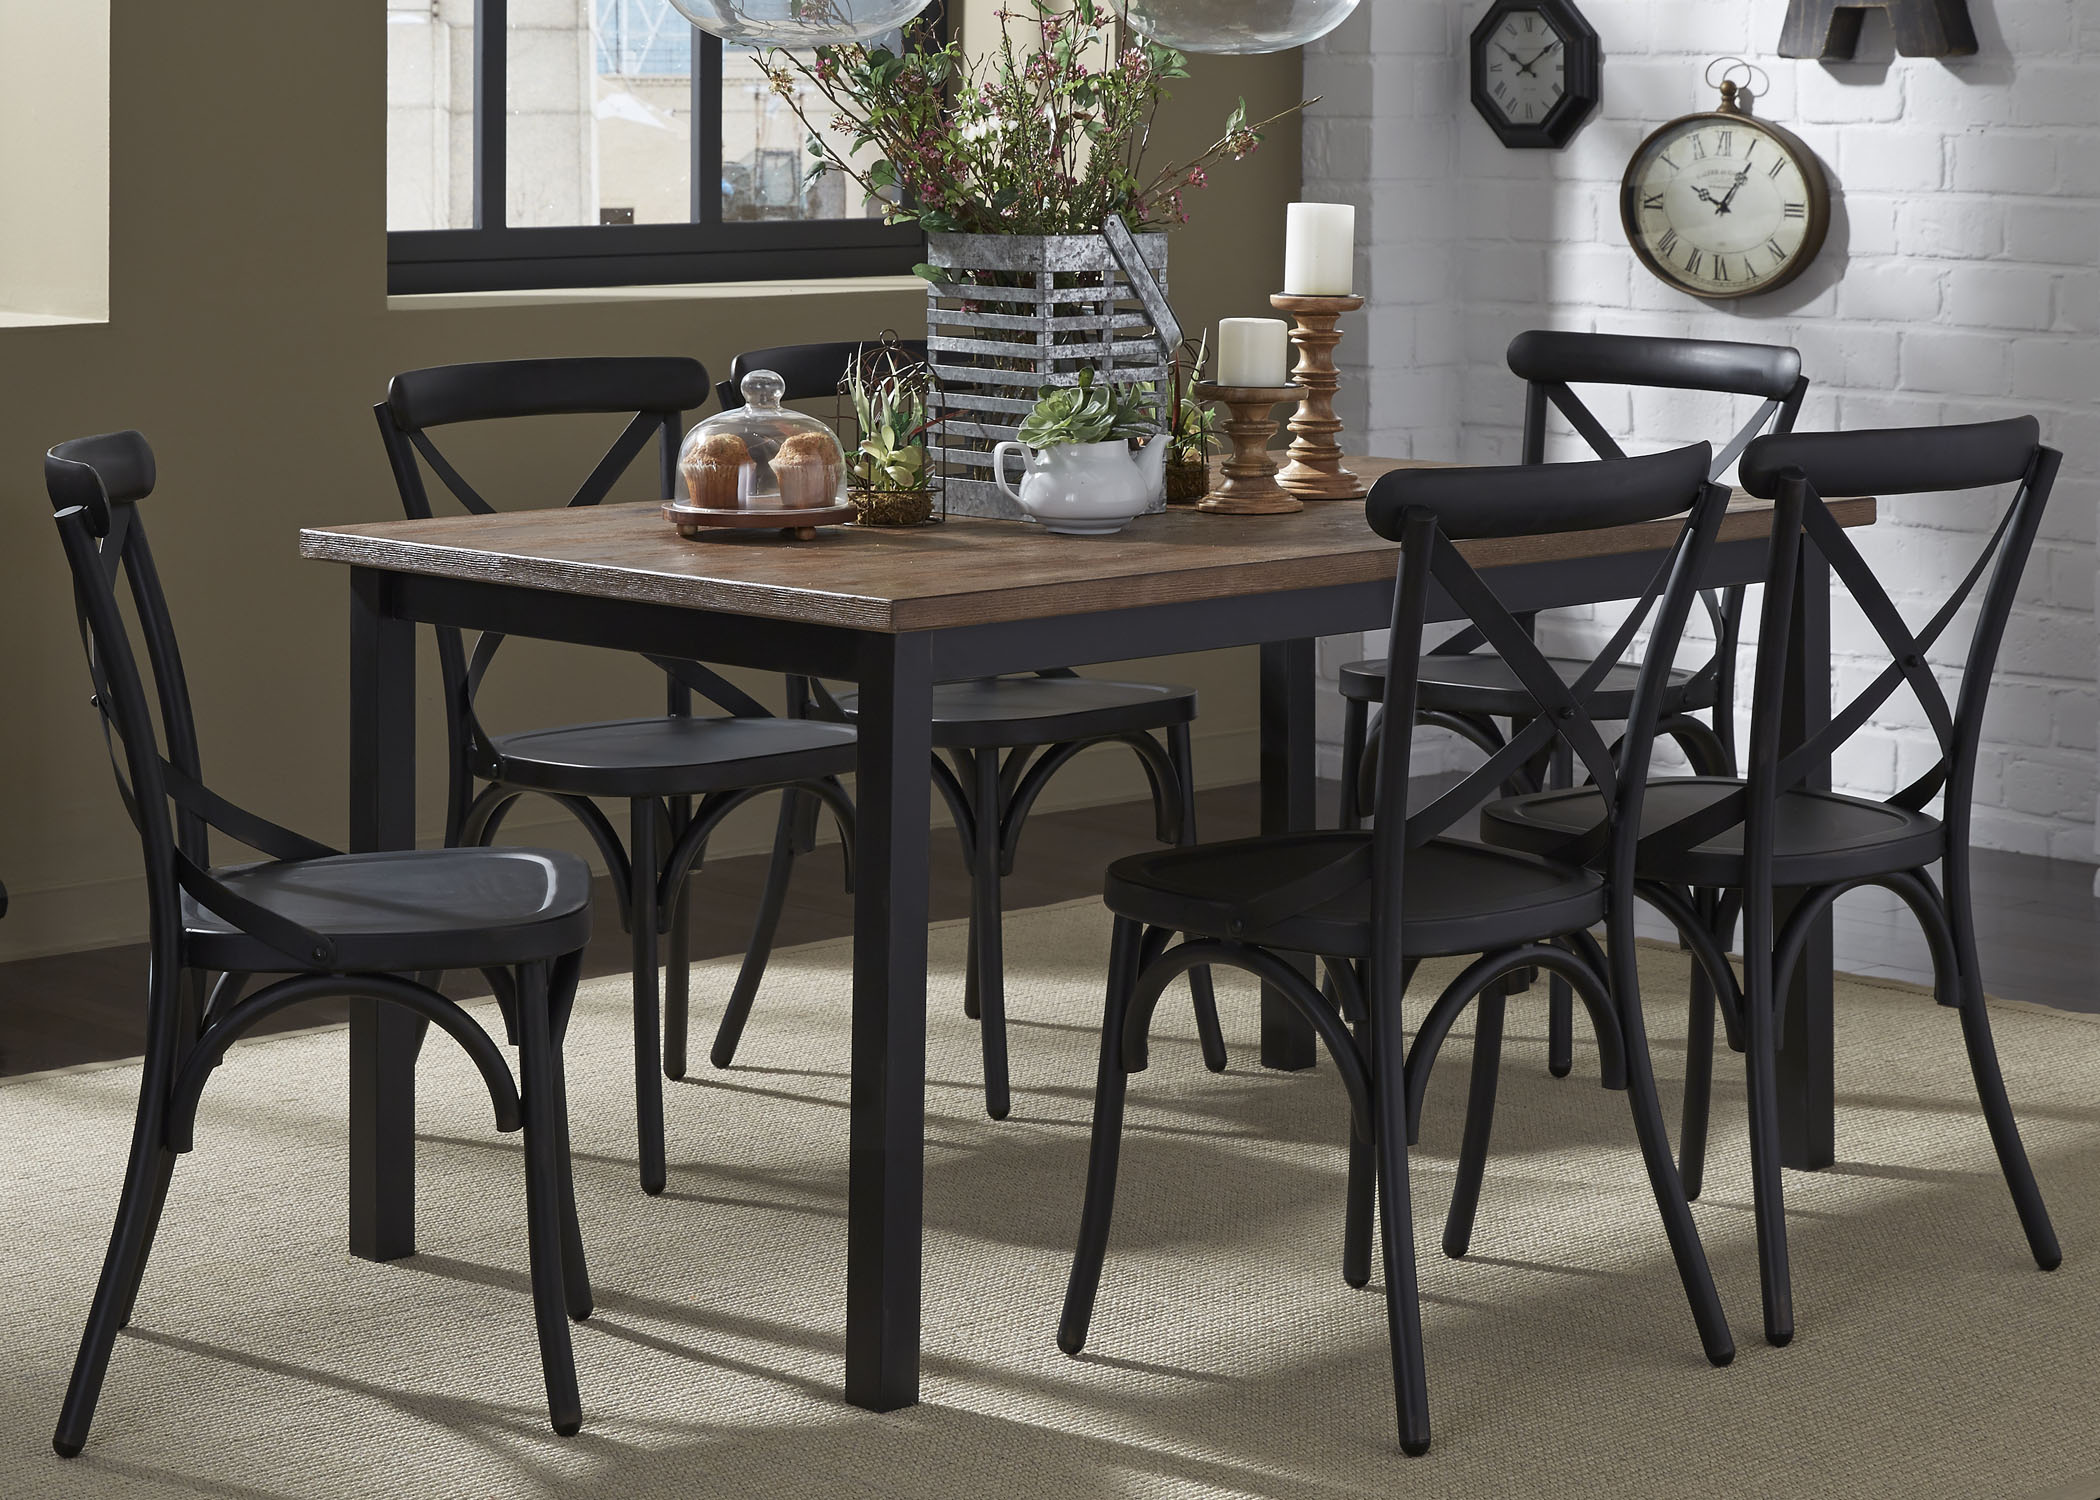 Vintage Dining Series 7-Piece Table and Chair Set by Liberty Furniture at Home Collections Furniture